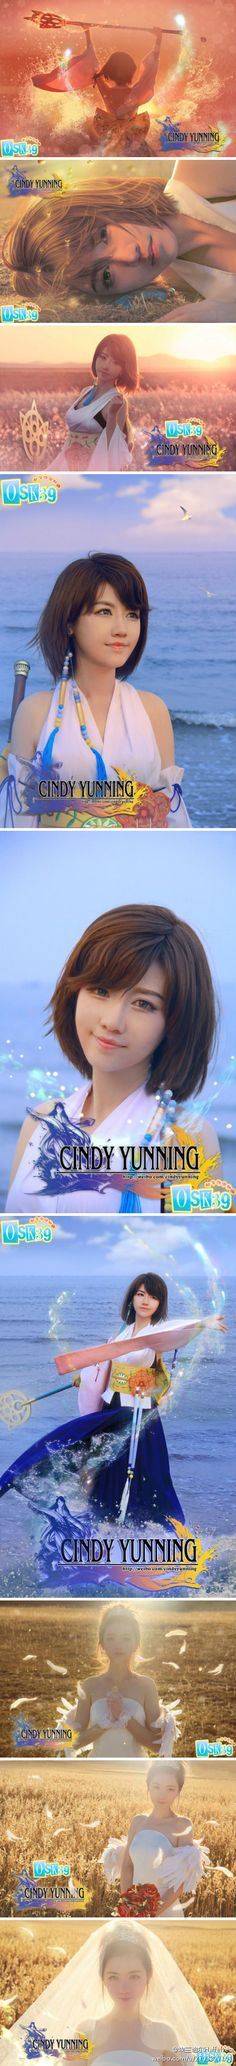 the BEST Yuna cosplay I've ever seen!!! by Chinese coser Cindy Yunning